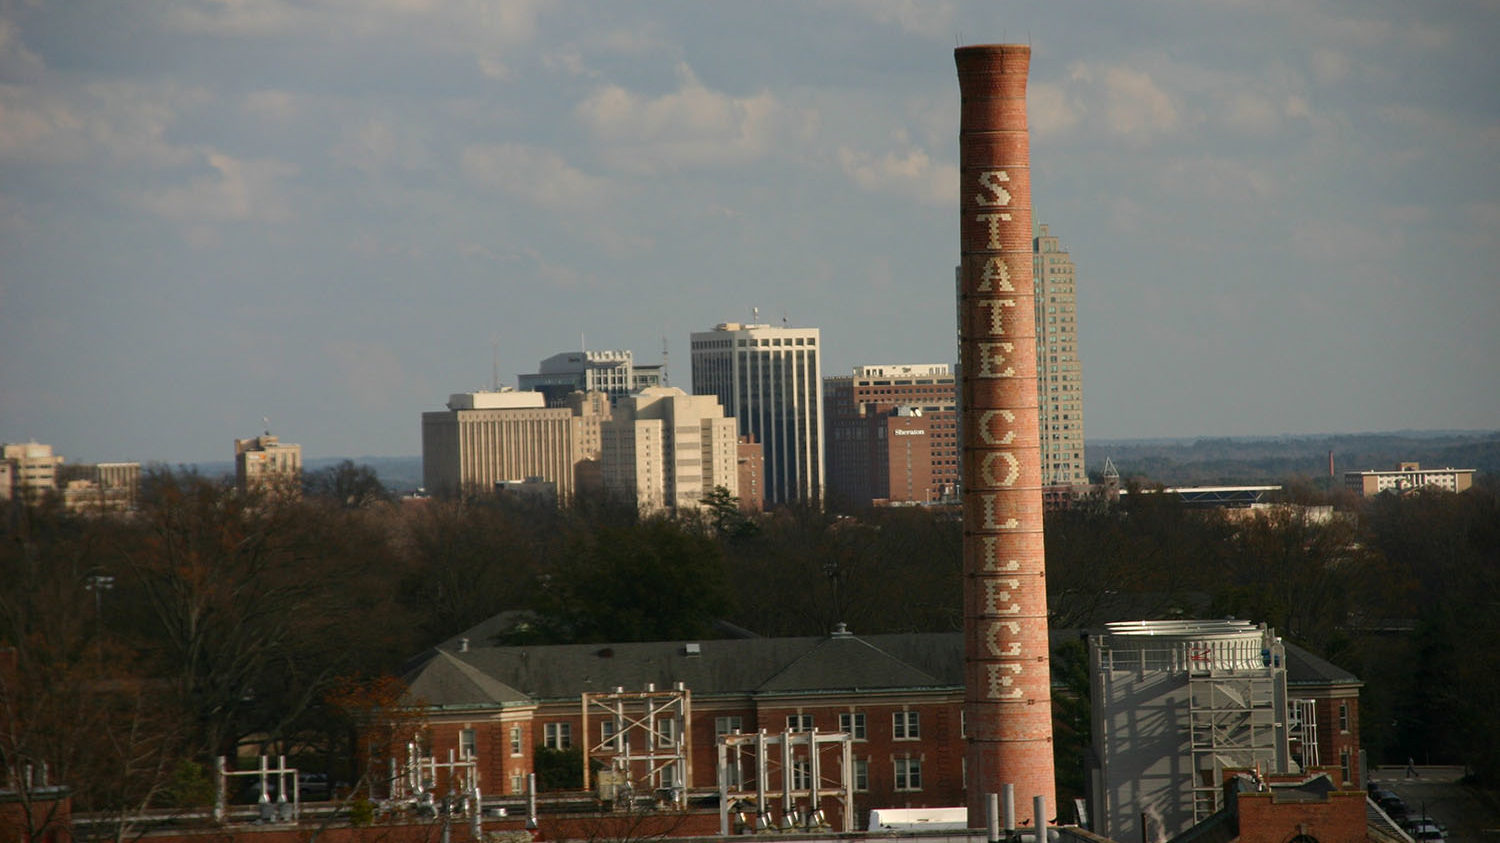 skyline and smokestack